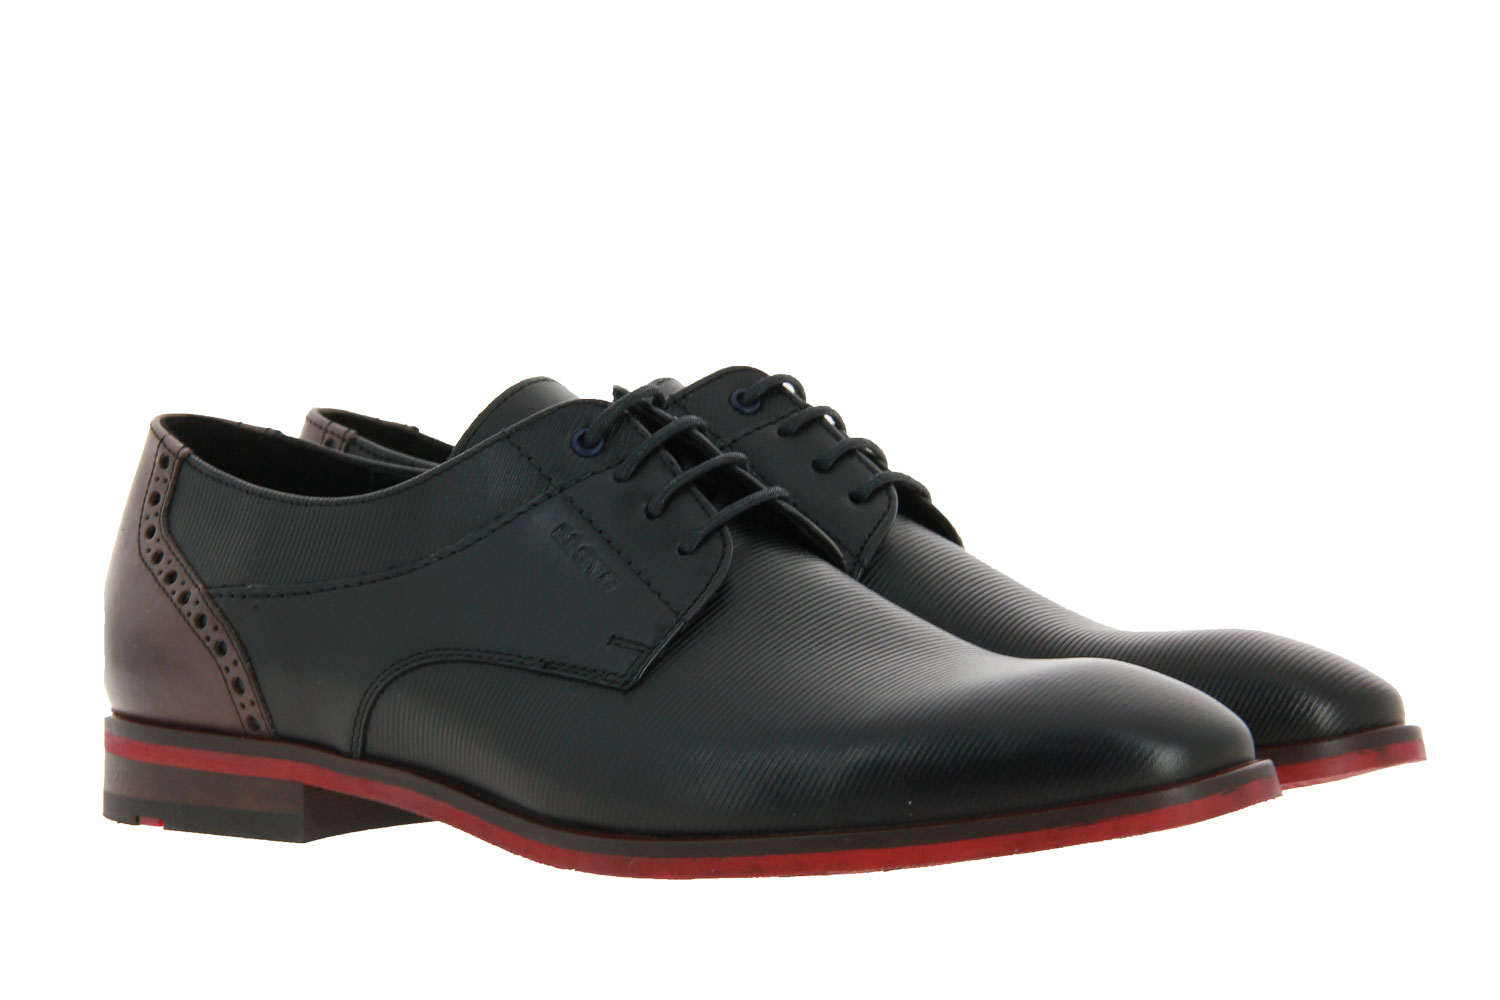 Lloyd lace-up HAMILTON GRANADA CALF SCHWARZ EBONY